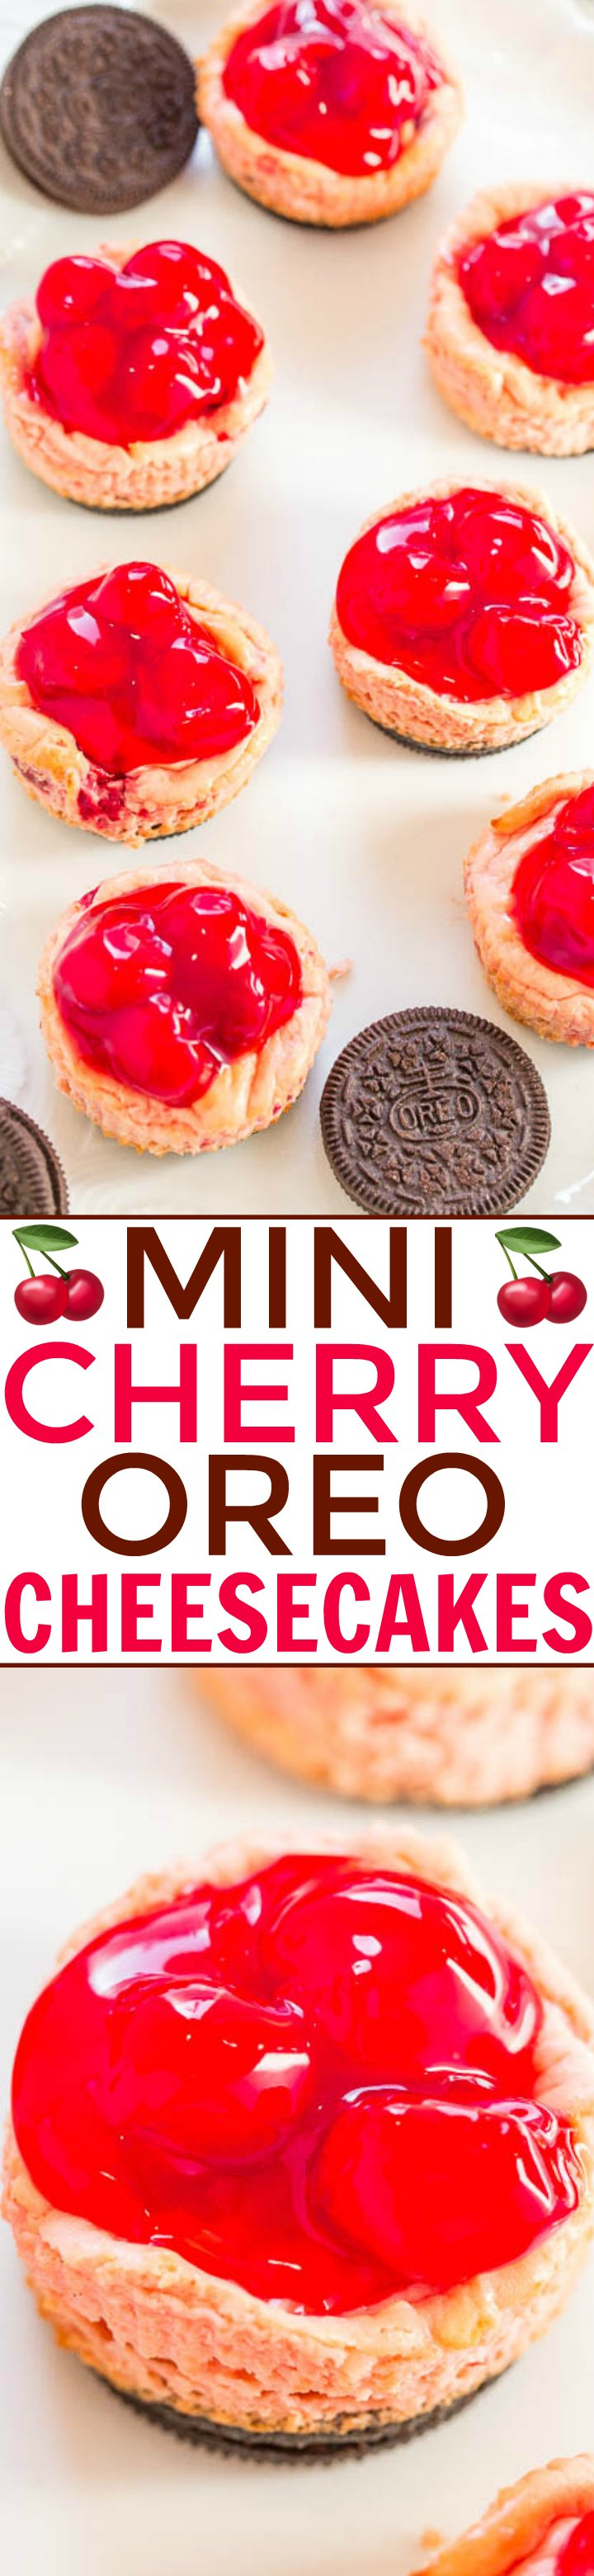 Mini Cherry Oreo Cheesecakes – EASY mini cheesecakes loaded with cherries and an Oreo cookie crust!! The hit of your Valentine's Day party! Mini food is IRRESISTIBLE!!